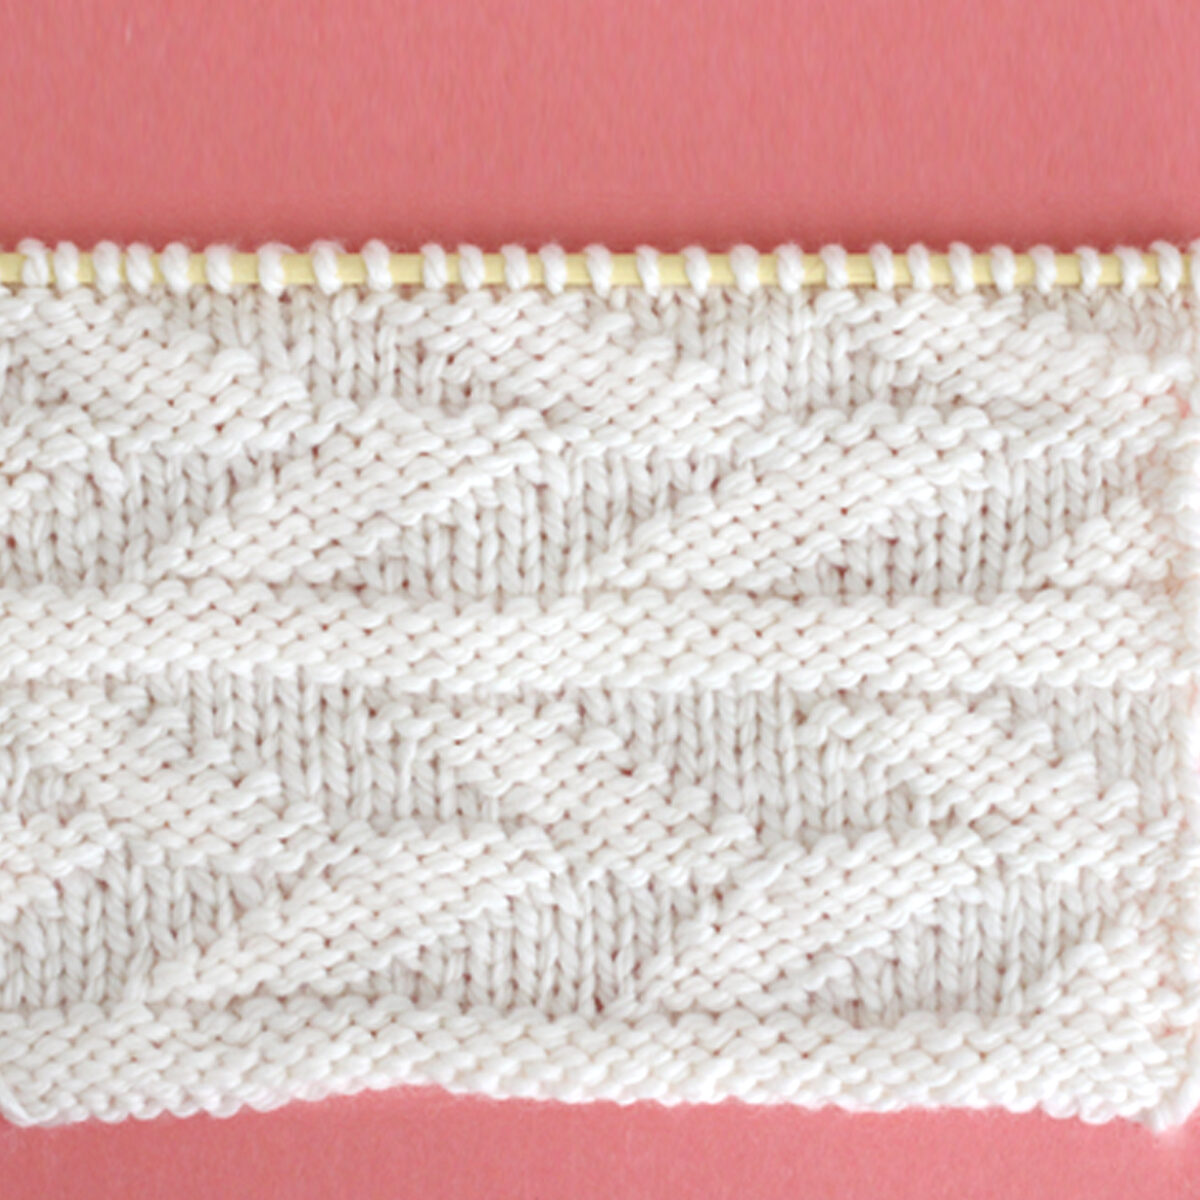 Knitted Embossed Leaf Stitch Pattern in white yarn on knitting needle.